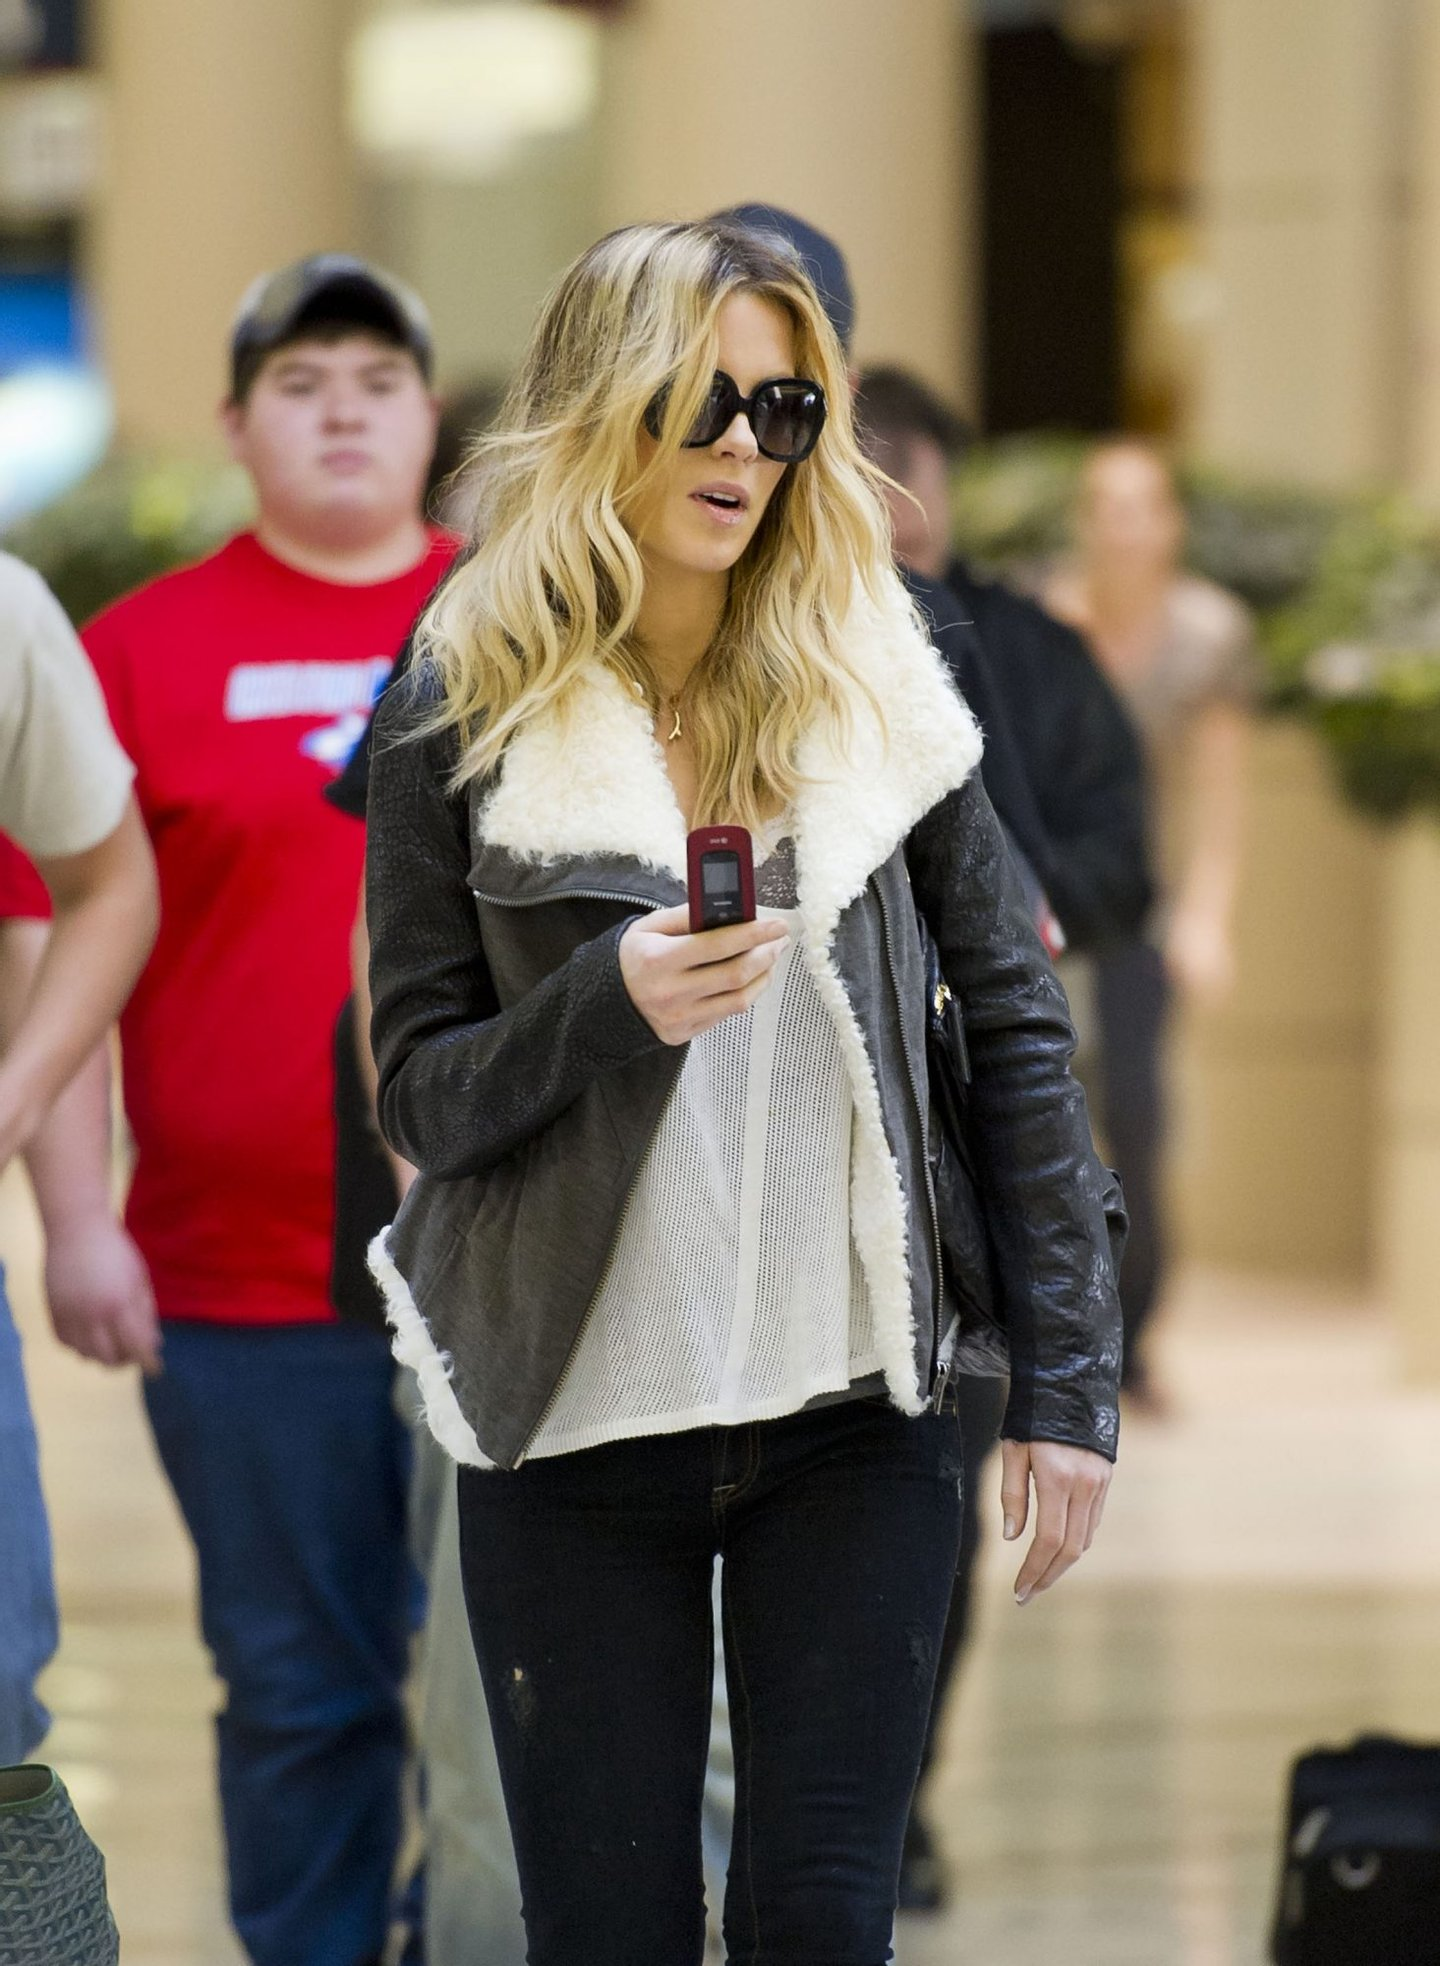 LOS ANGELES, CA - FEBRUARY 23: Kate Beckinsale is seen at Los Angeles International Airport on February 23, 2011 in Los Angeles, California. (Photo by GVK/HM/Bauer-Griffin/GC Images)